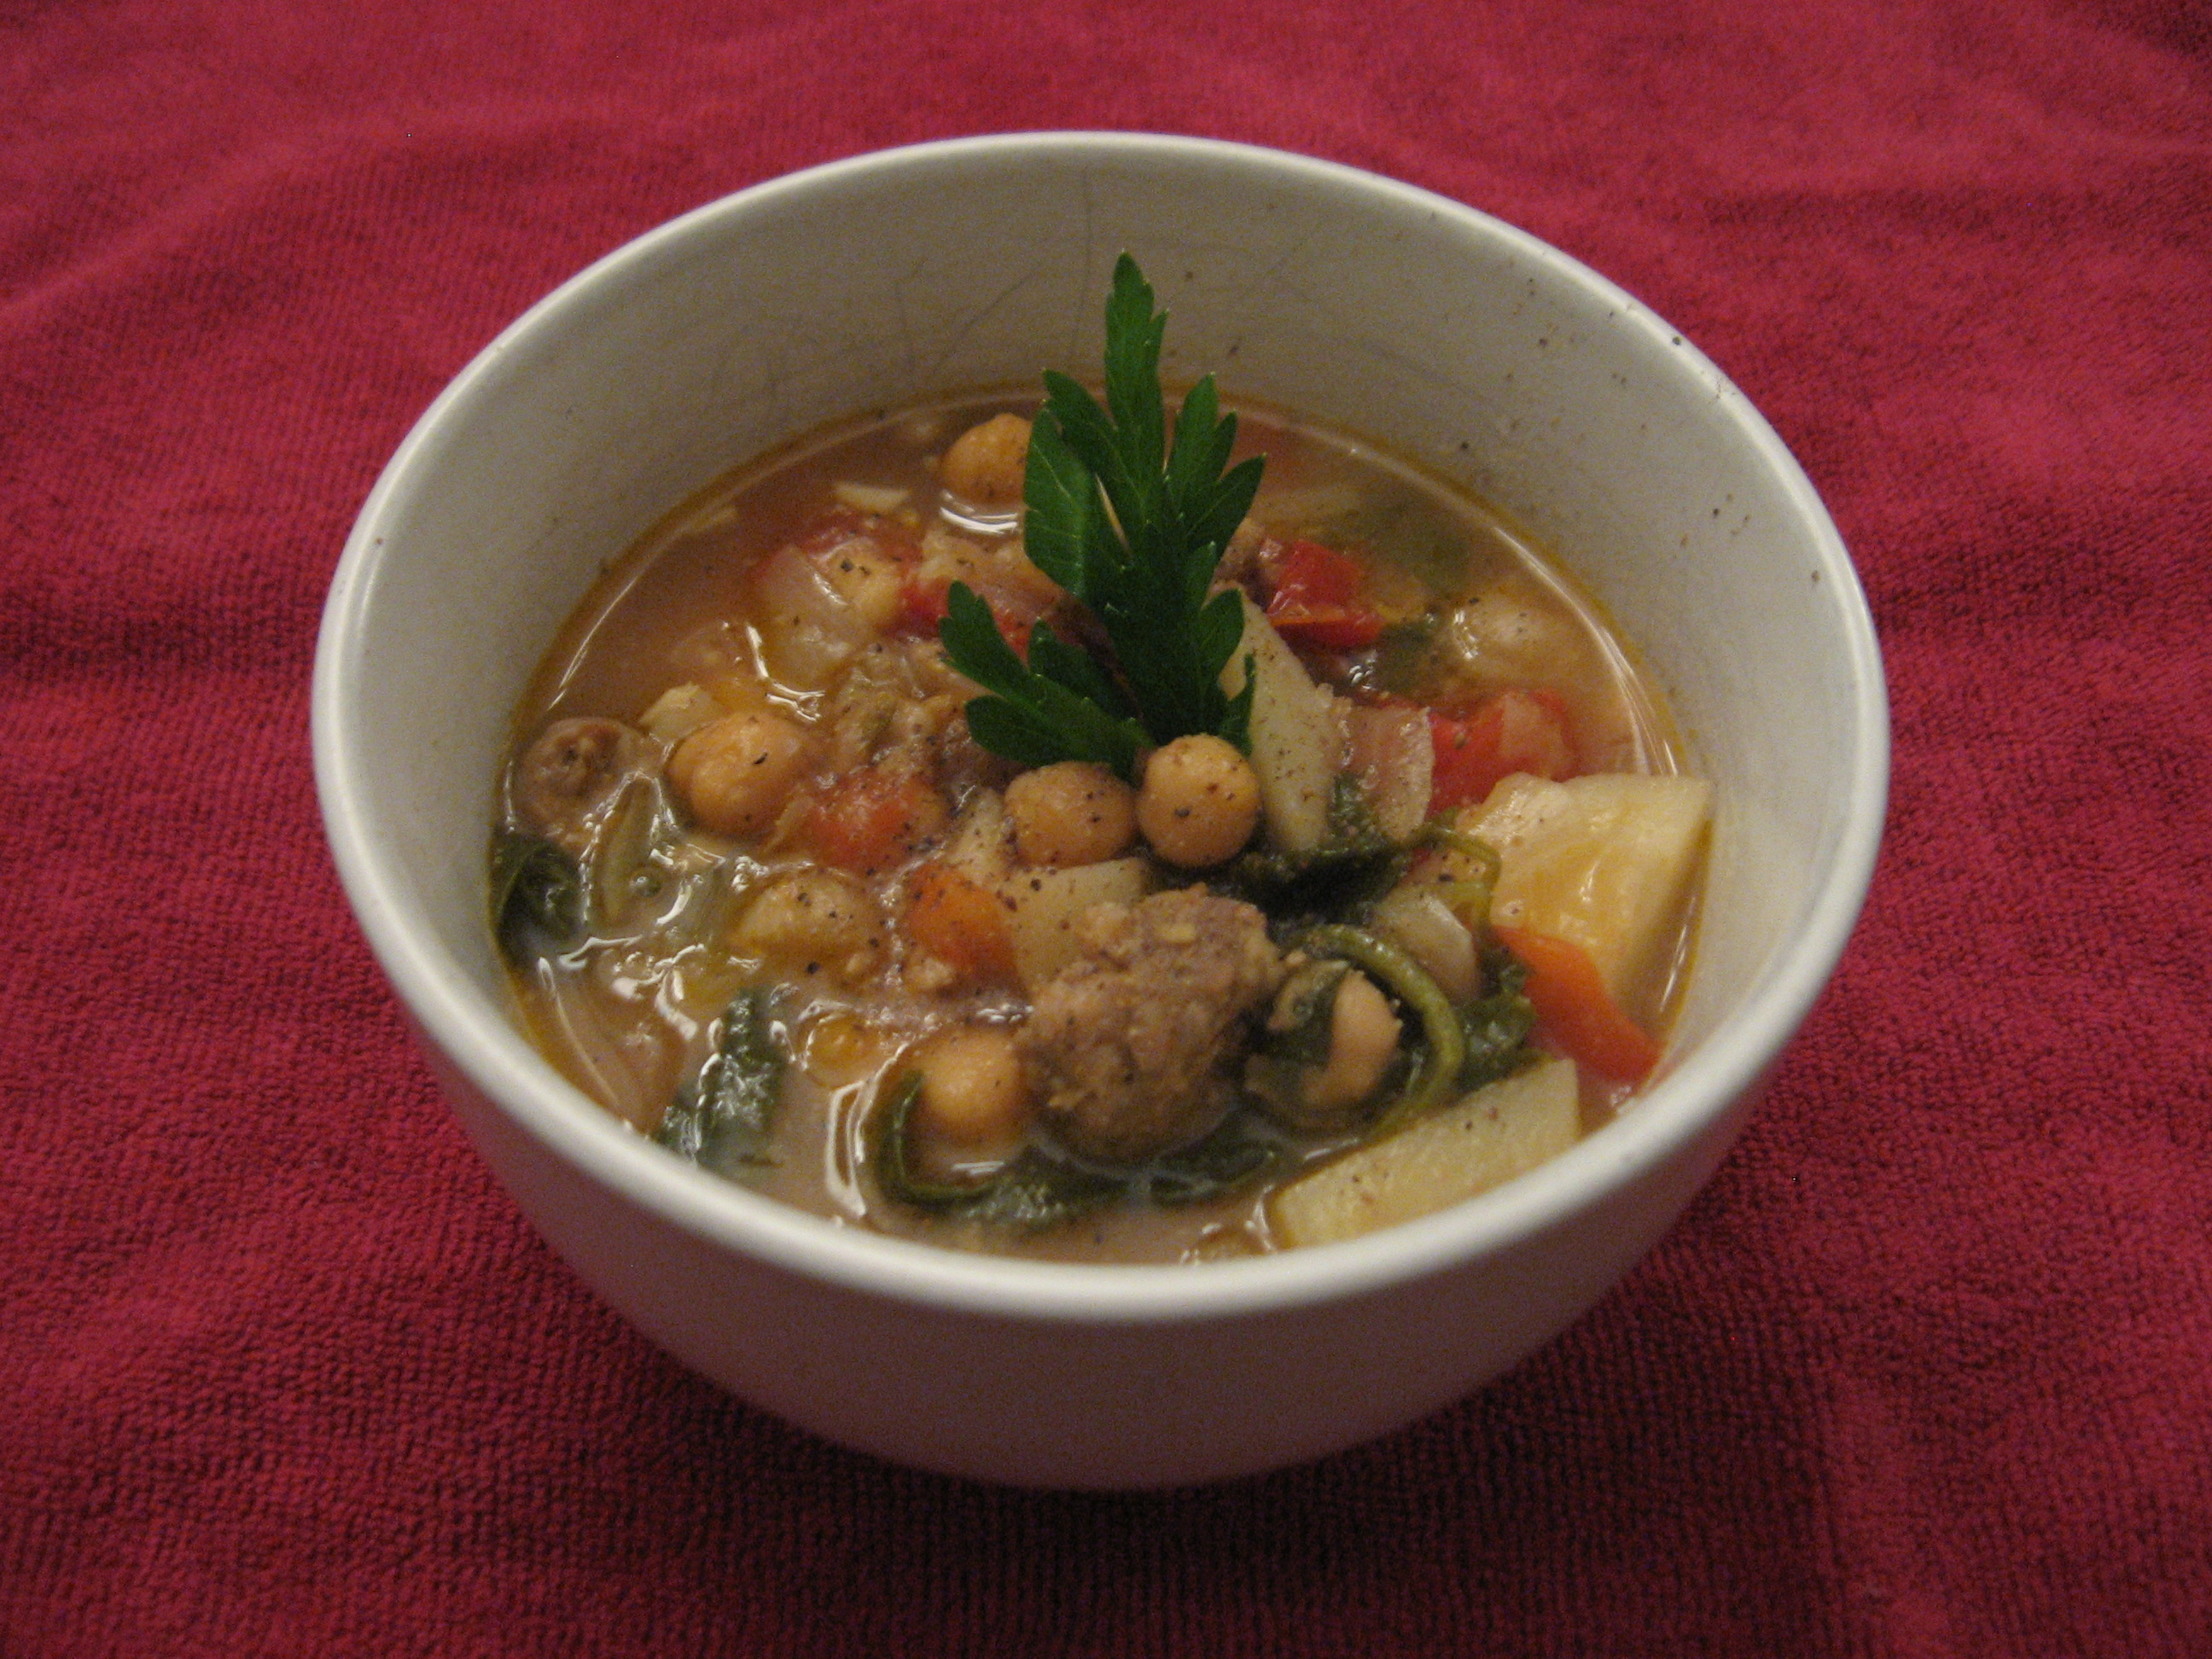 Chorizo and Kale Soup: Rachel Ray Meets The Honest Butcher (well their Chorizo anyway)